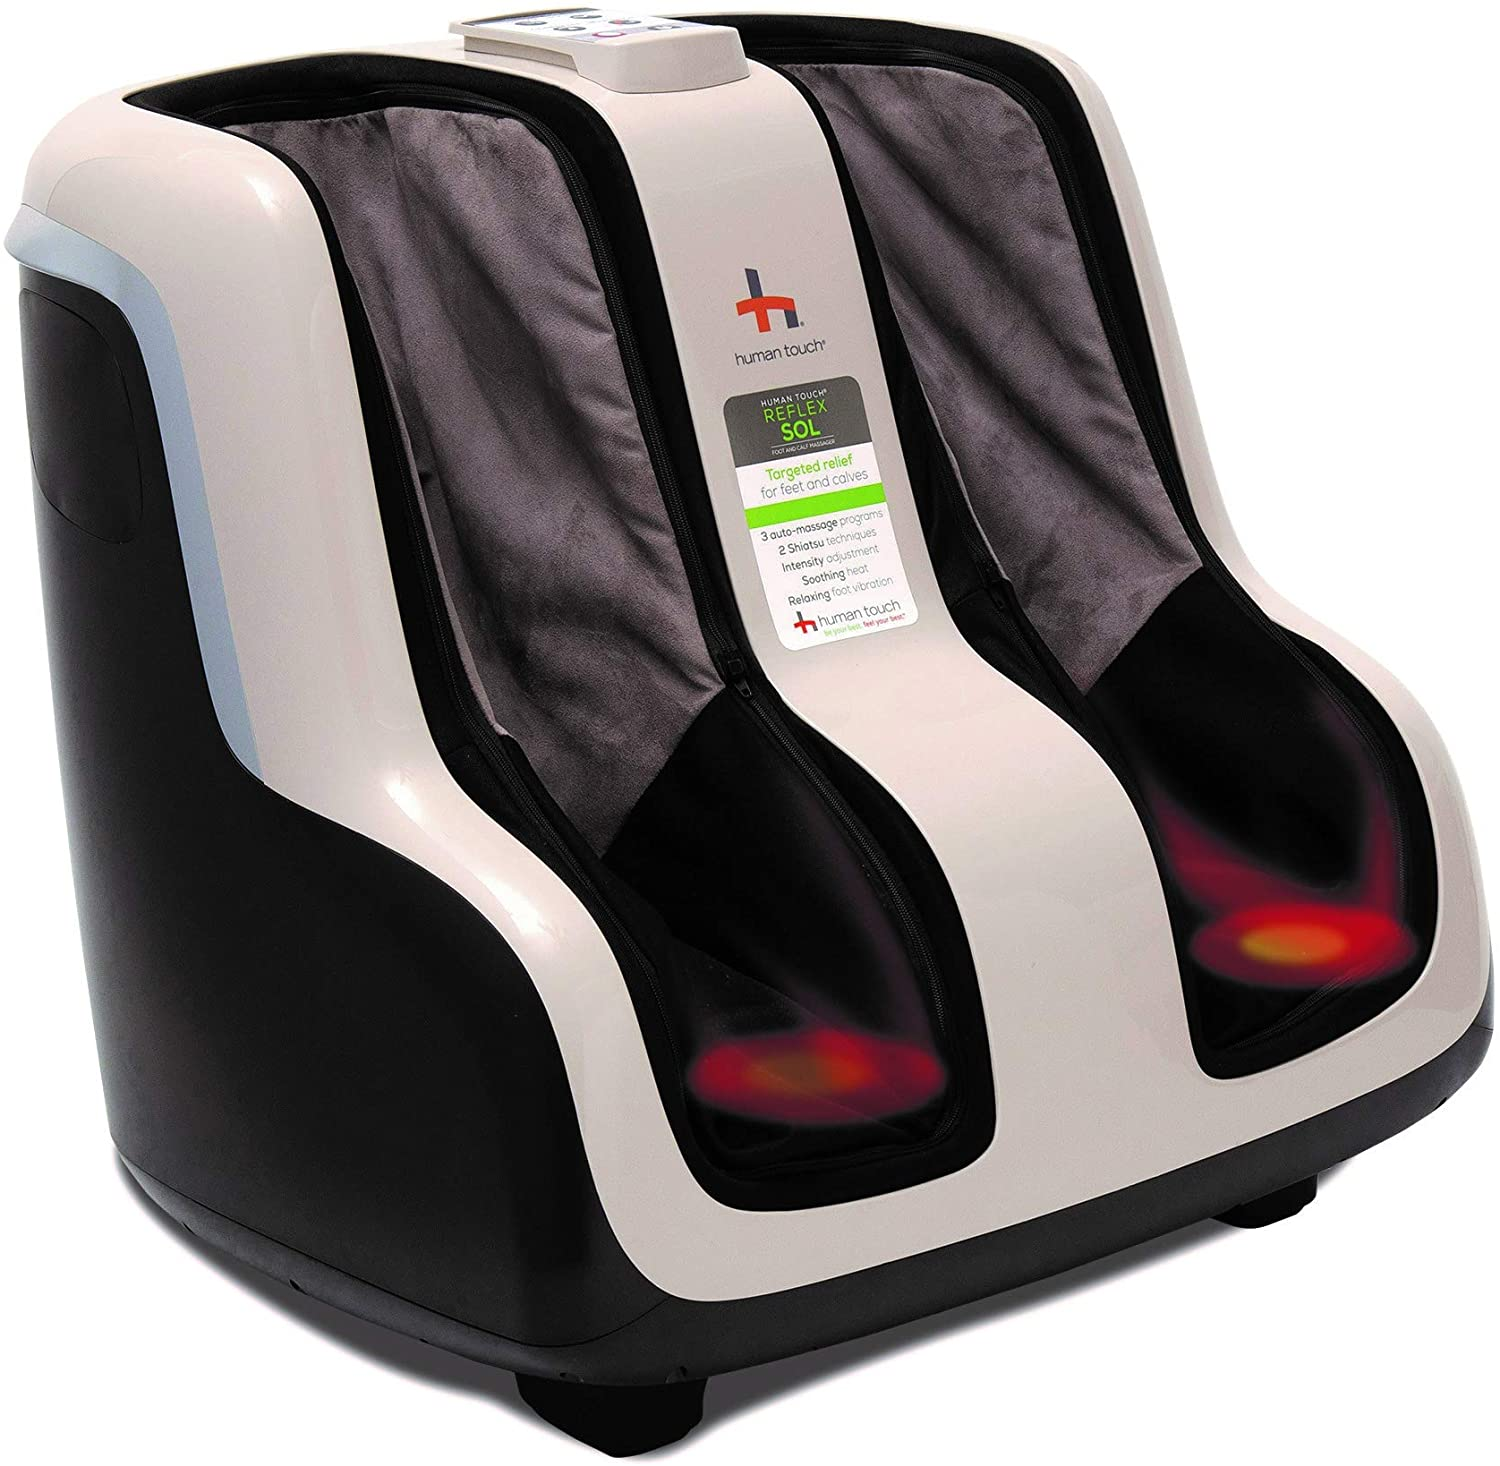 Human Touch Foot Massaging Machines